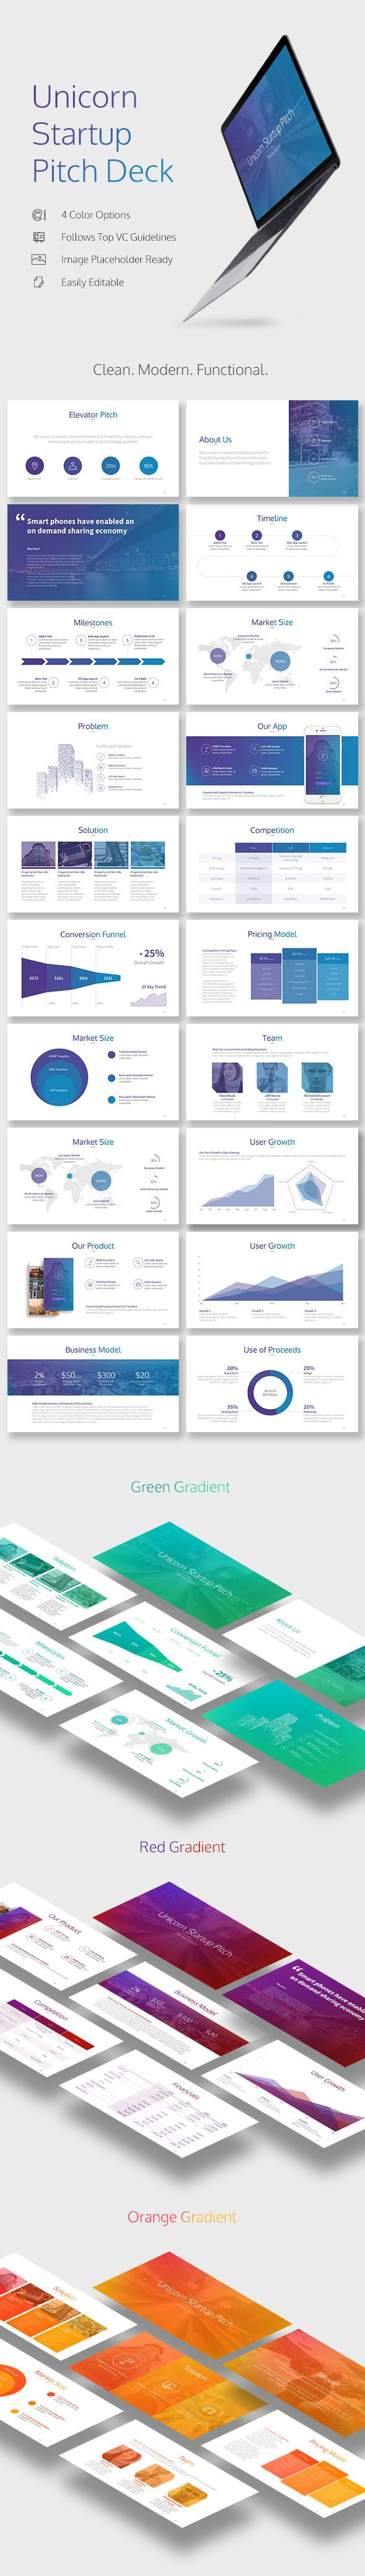 Unicorn Startup Pitch Deck - PowerPoint Template. Download here: http://graphicriver.net/item/unicorn-startup-pitch-deck-/15714336?ref=ksioks